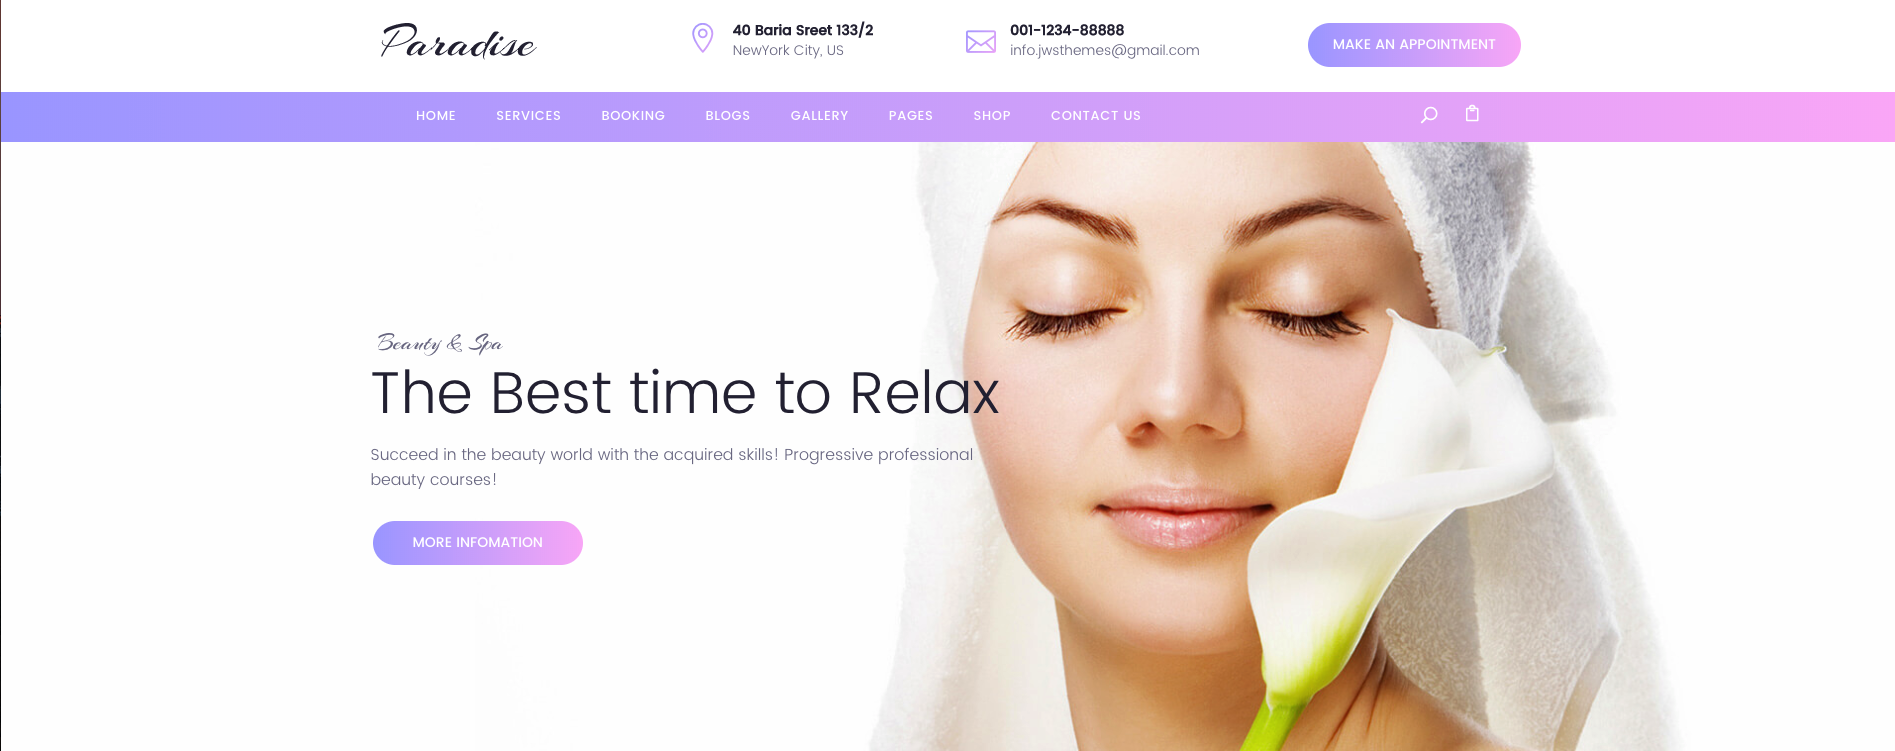 MULTIPURPOSE BEAUTY & SPA, HAIRCUT, NAIL, TATTOO WORDPRESS THEME